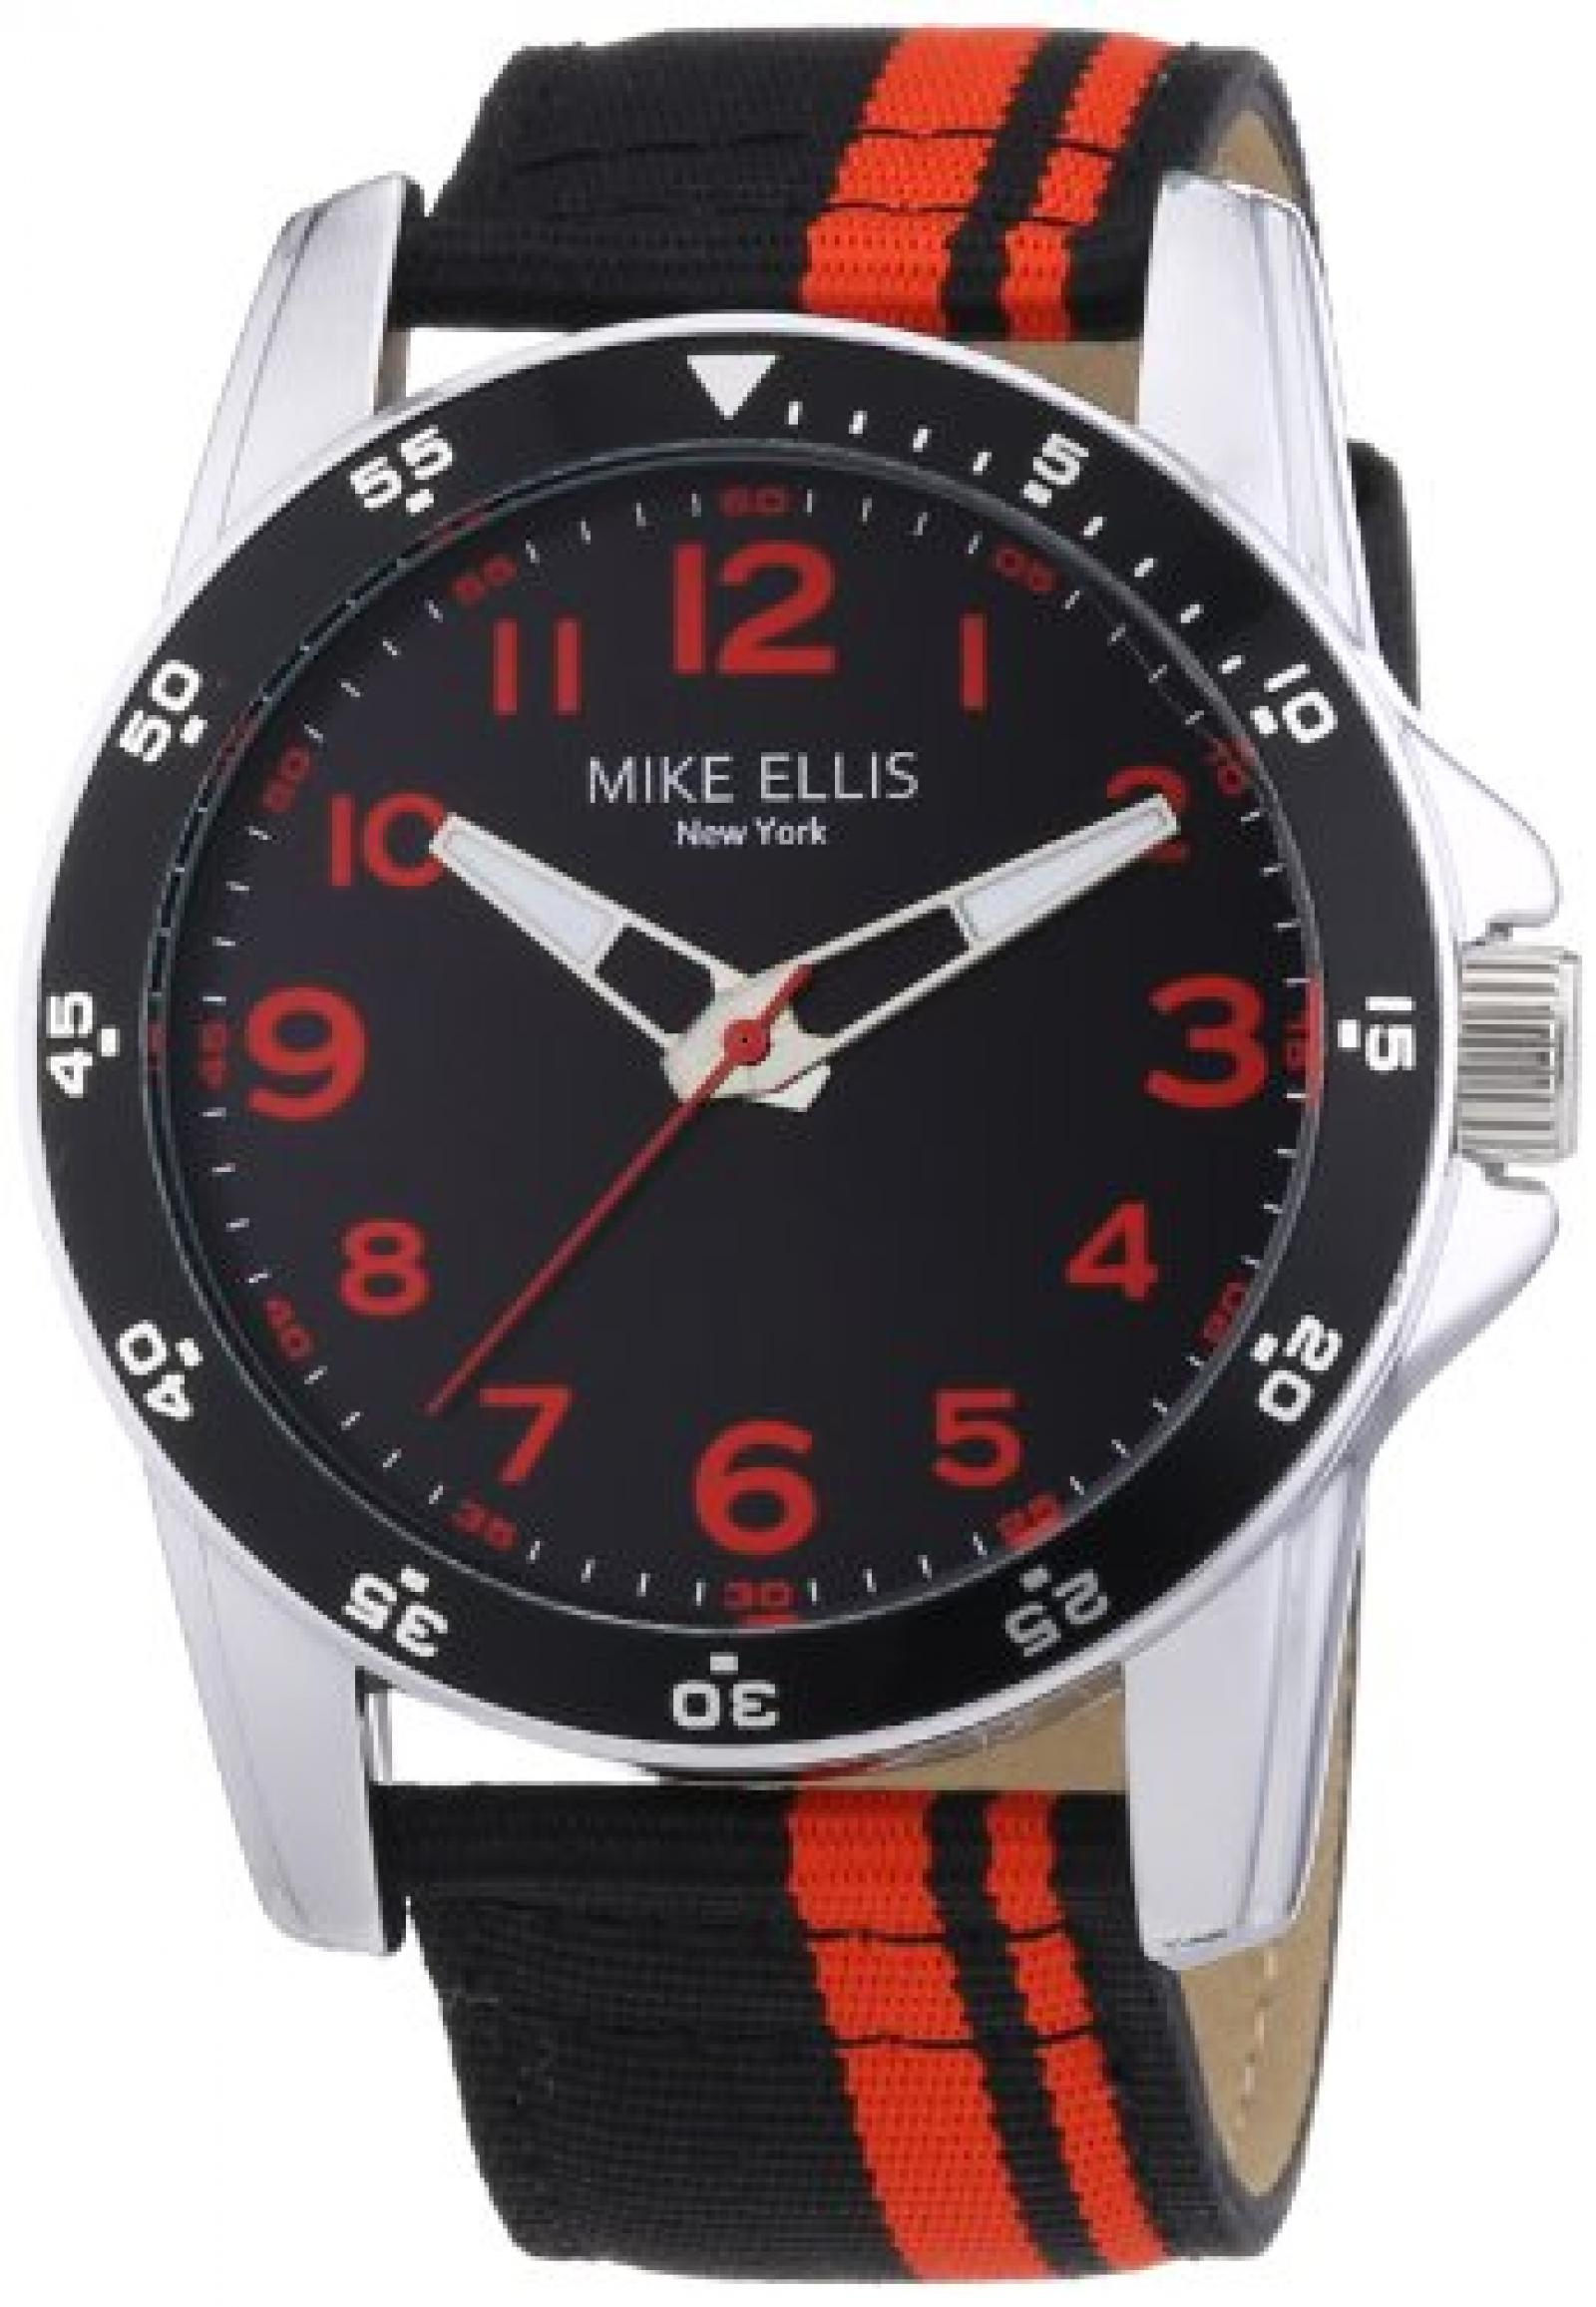 Mike Ellis New York Herren-Armbanduhr XL Analog Quarz Textil M3145/1